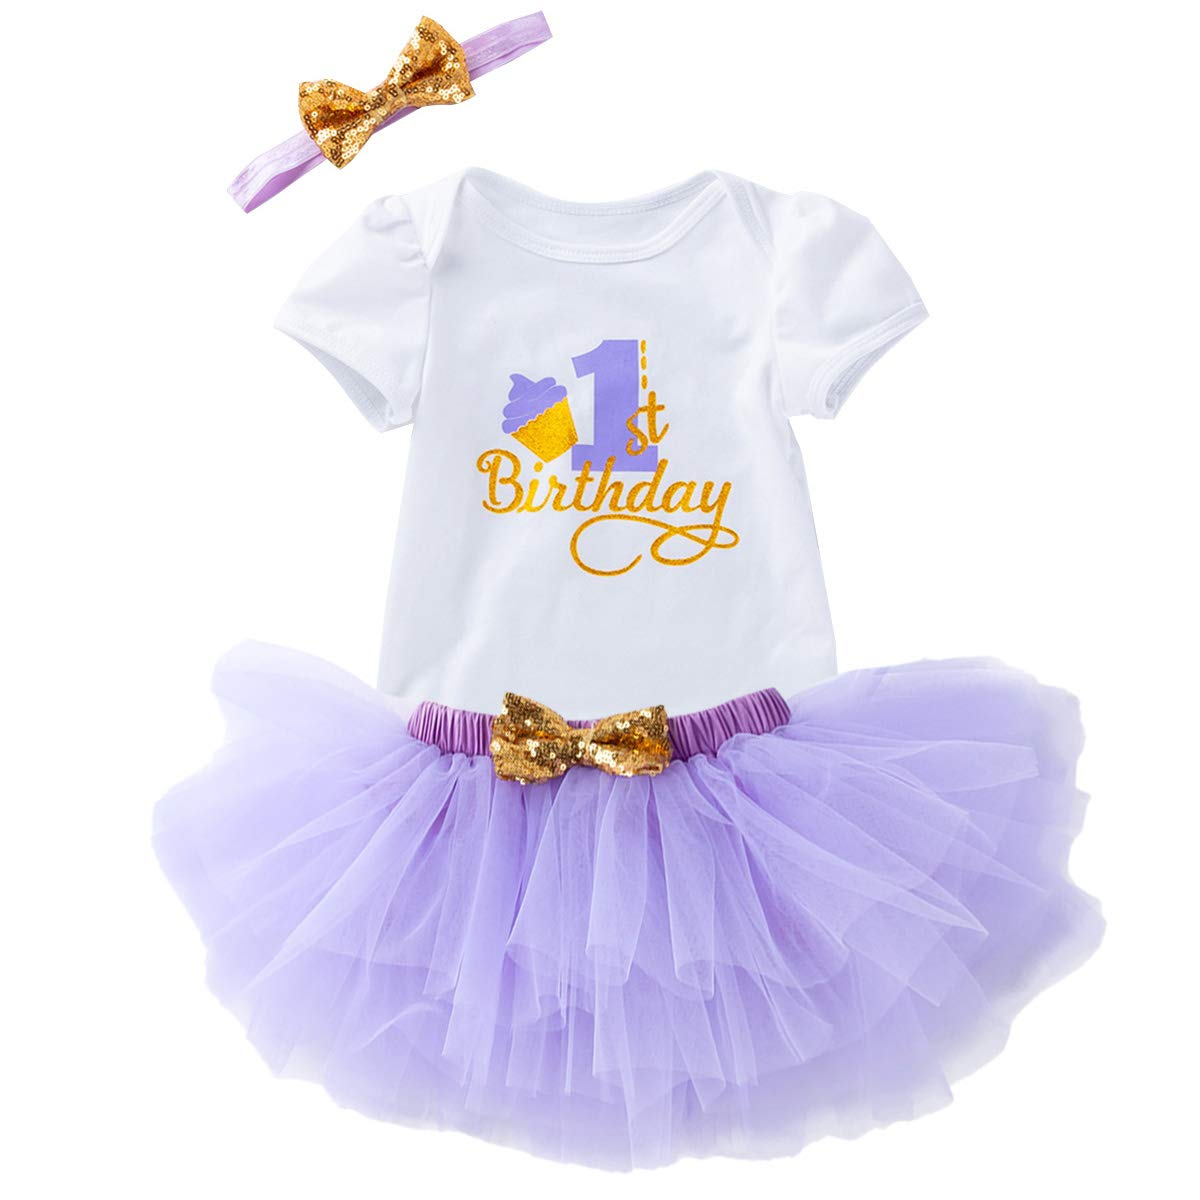 Birthday Outfit Baby Girls Romper+Ruffle Tulle Skirt+Sequins Bow Headband Cake Smash Tutu Dress Party Clothes 3Pcs Set